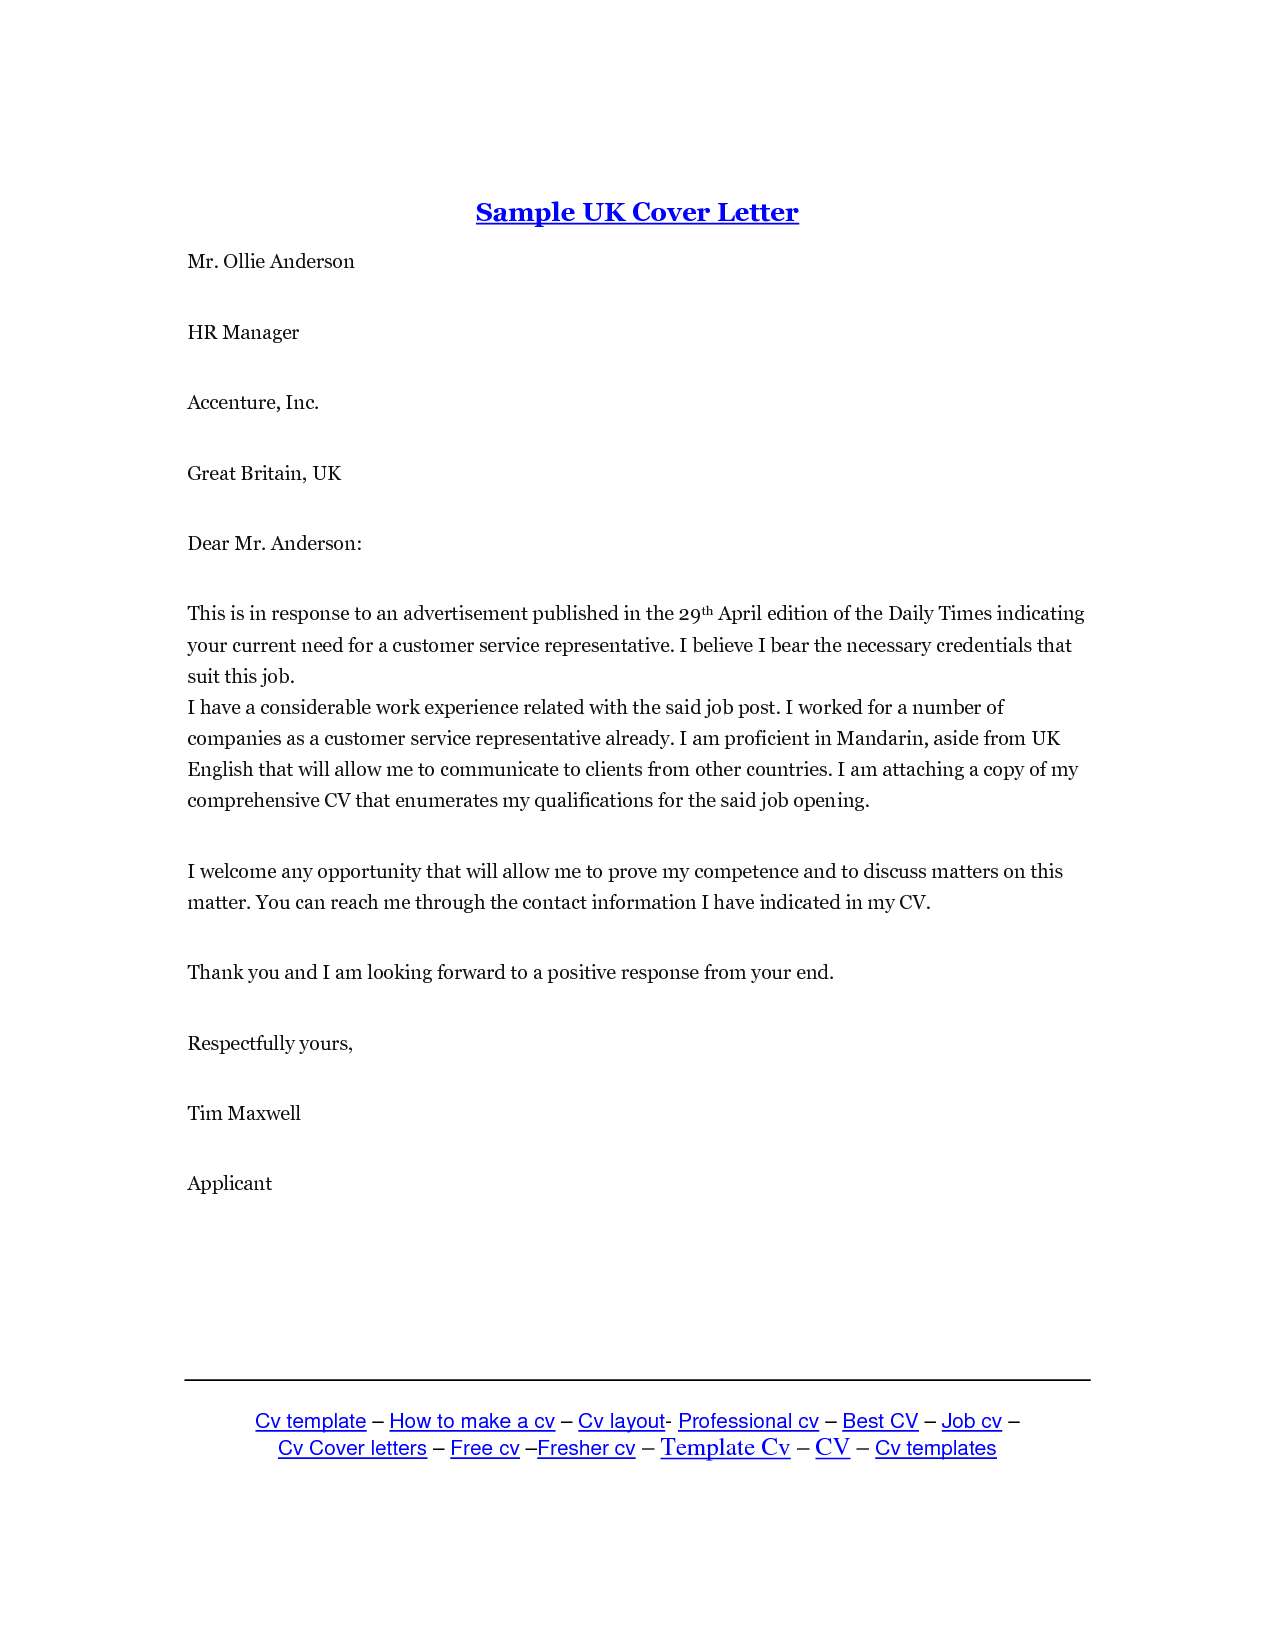 Email Cover Letter Template Uk  2Cover Letter Template